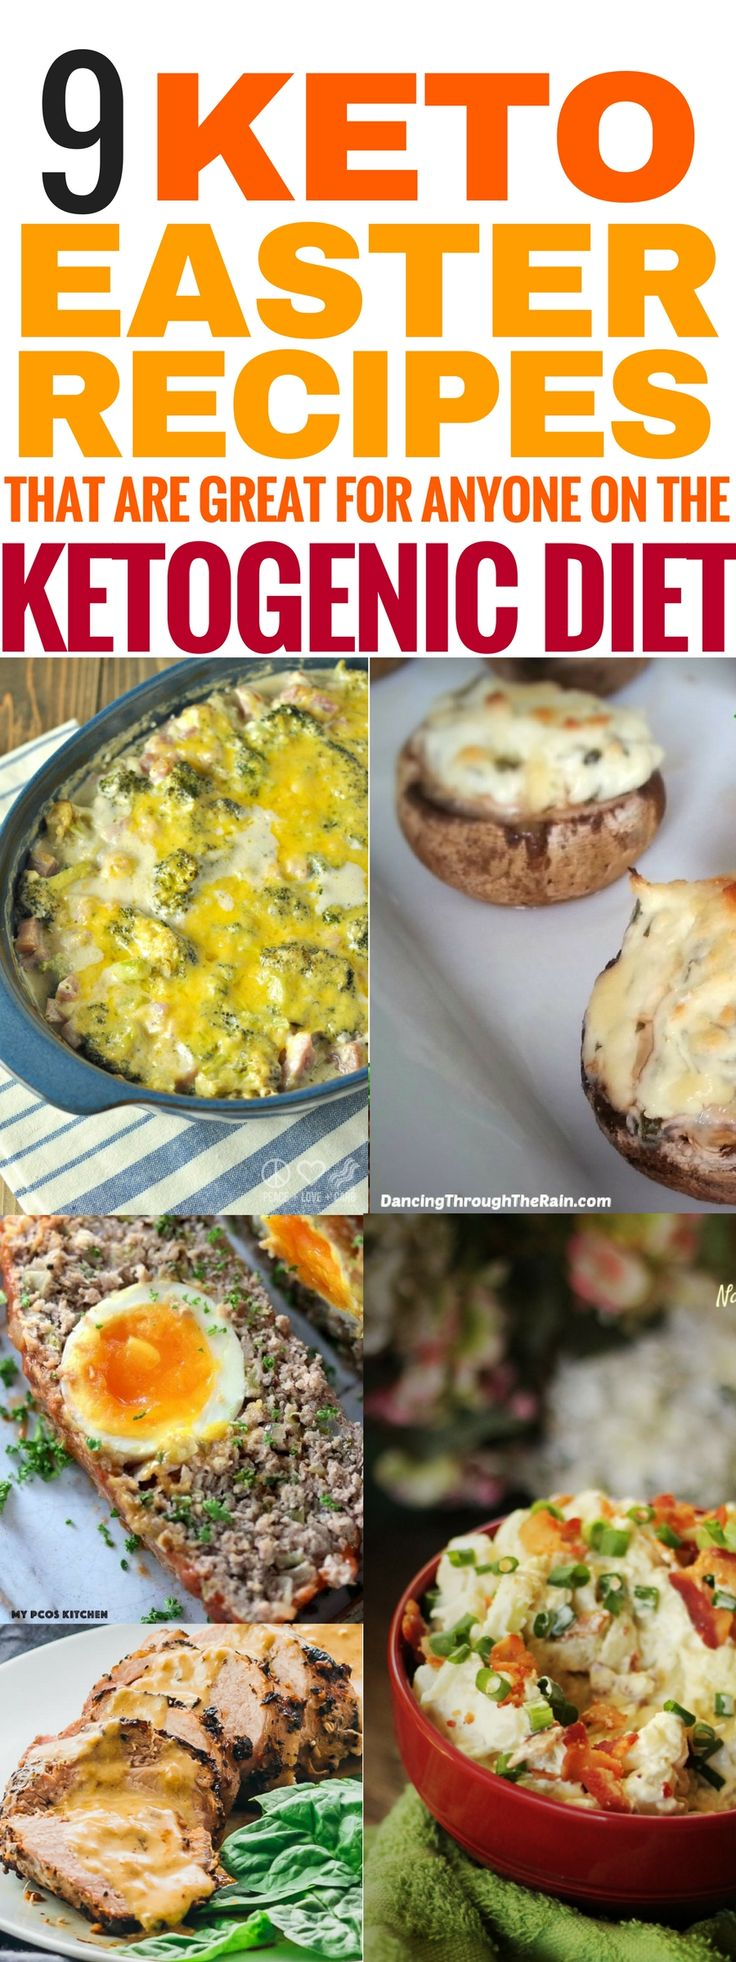 These keto easter recipes are THE BEST! I'm so glad I've found these delcious low carb meal ideas for Easter! Now my family and I can can enjoy some really tasty keto recipes and I can continue on my low carb high fat diet to lose weight and be healthy even on Easter! Definitely pinning this for later! #easter #easterrecipes #keto #ketorecipes #ketodiet #lchf